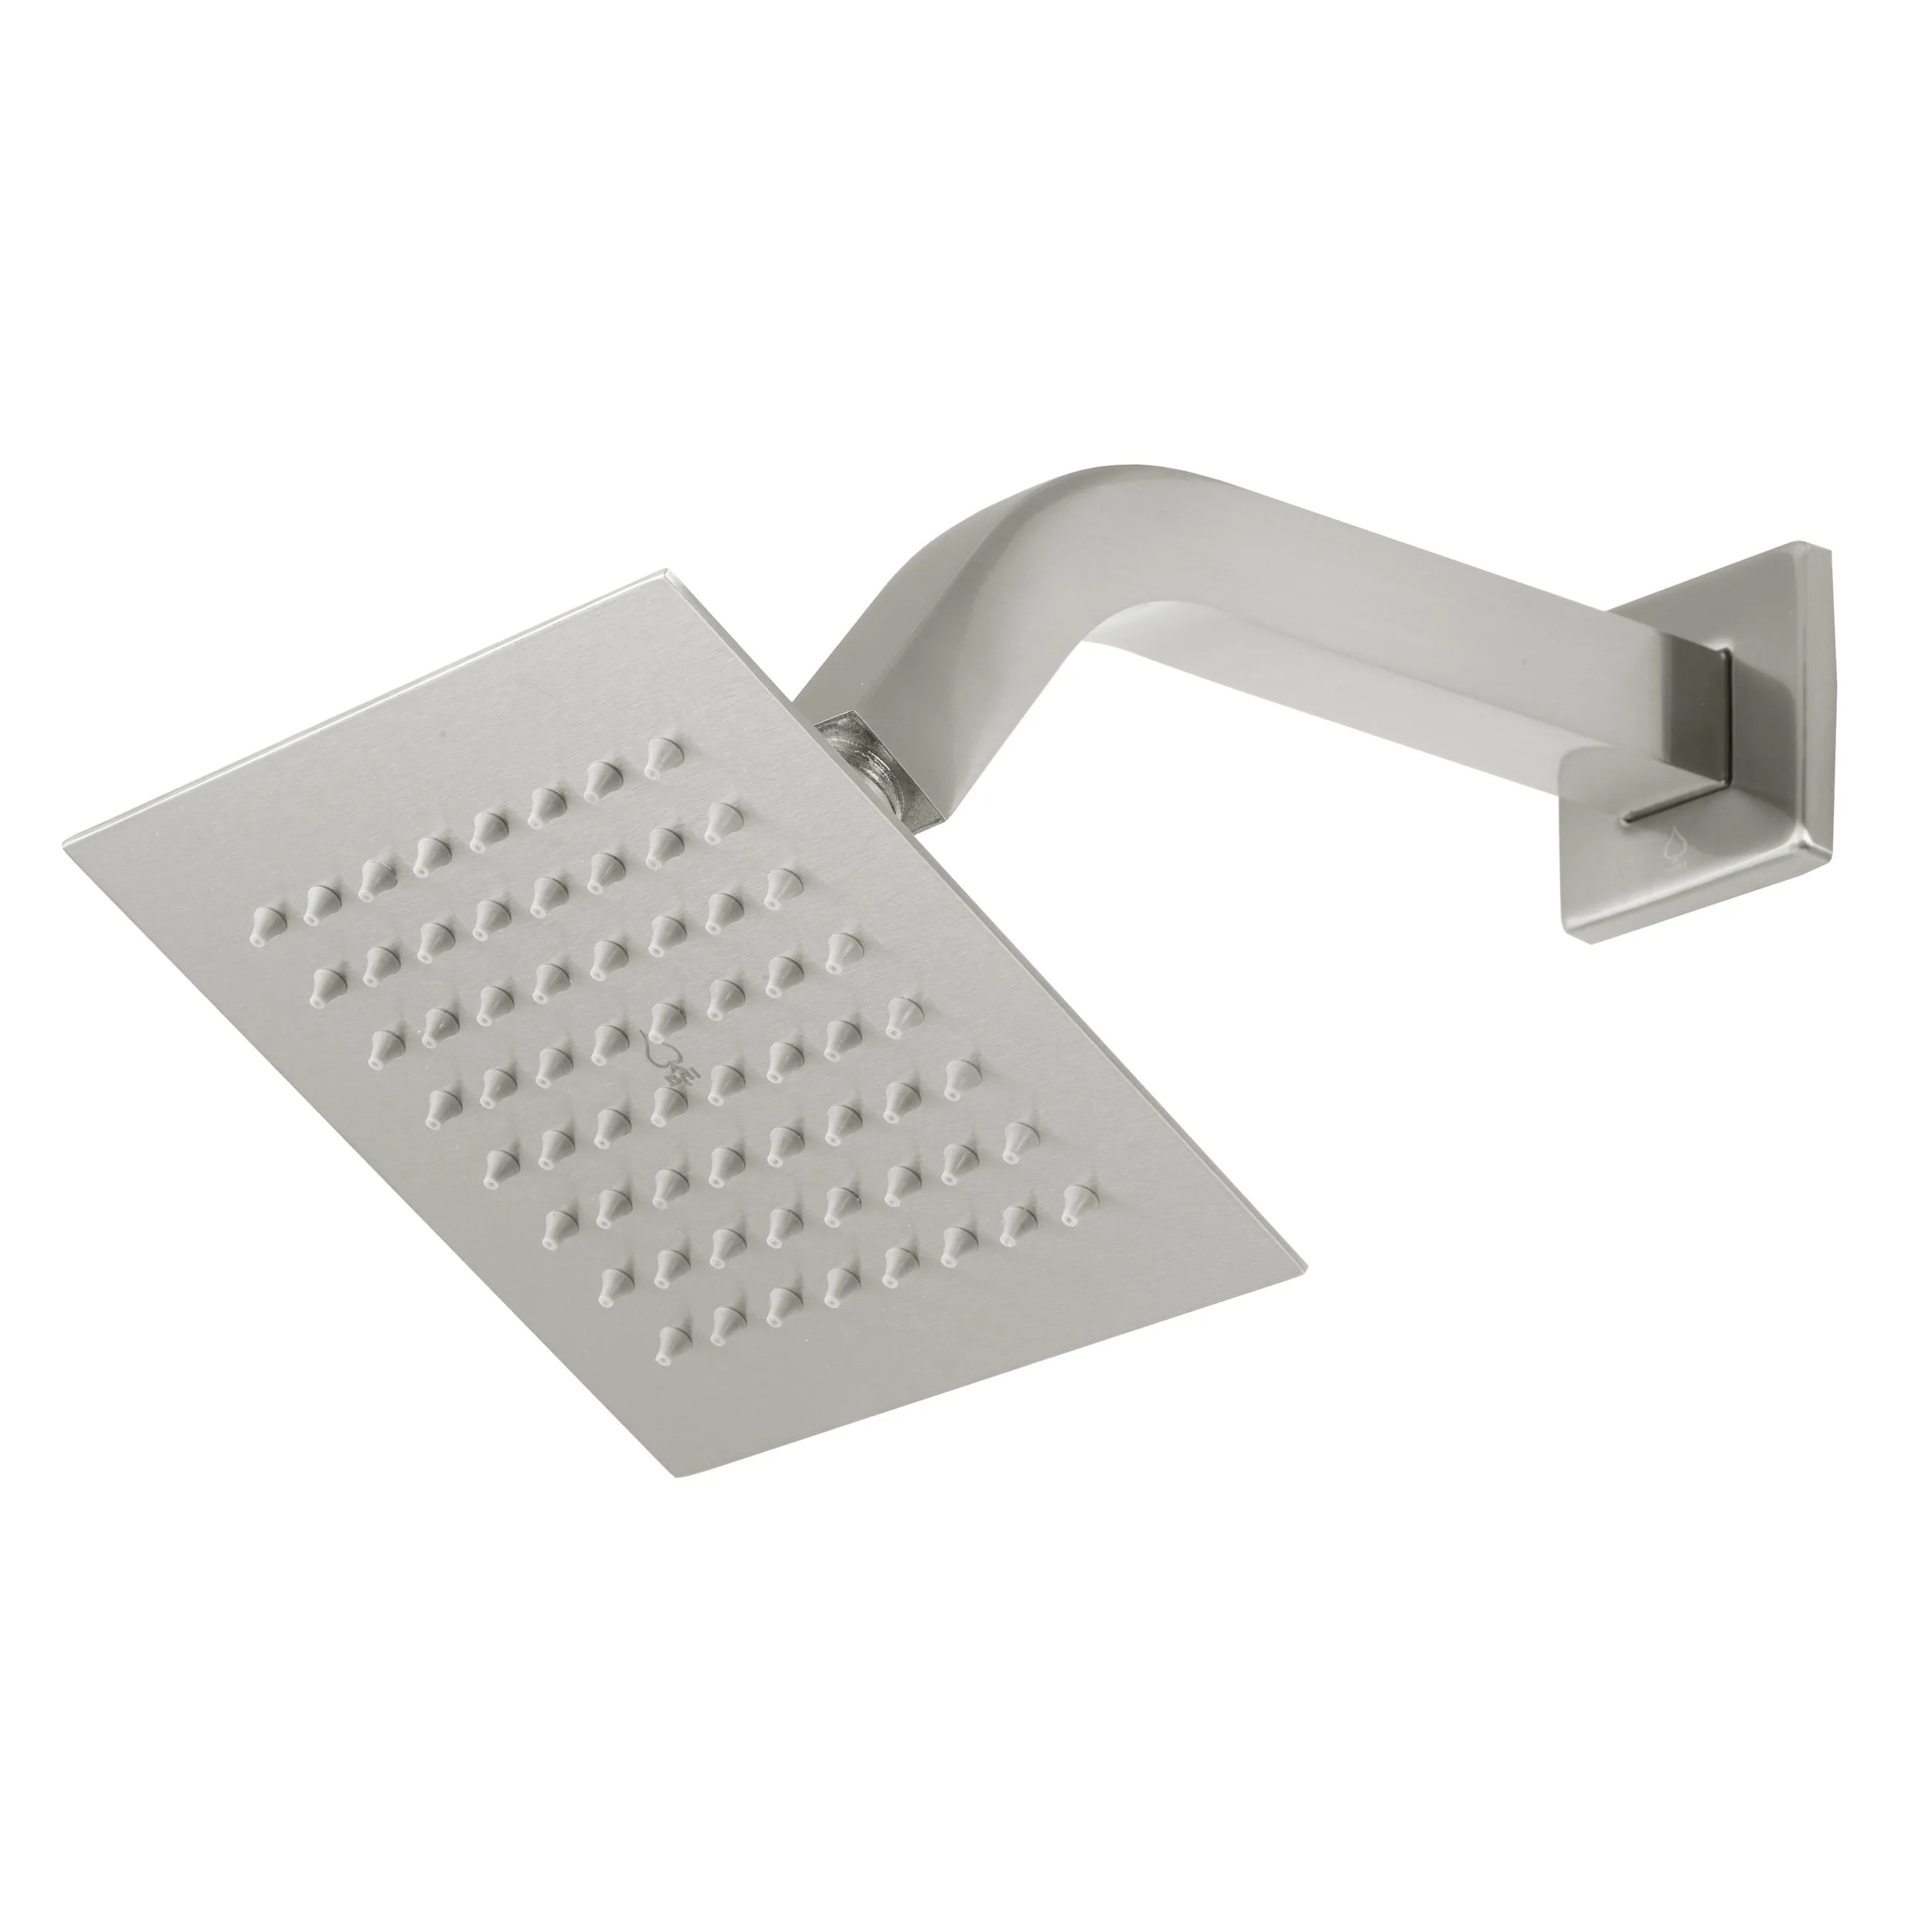 Bai 0443 Stainless Steel 6 Inch Square Rainfall Shower Head